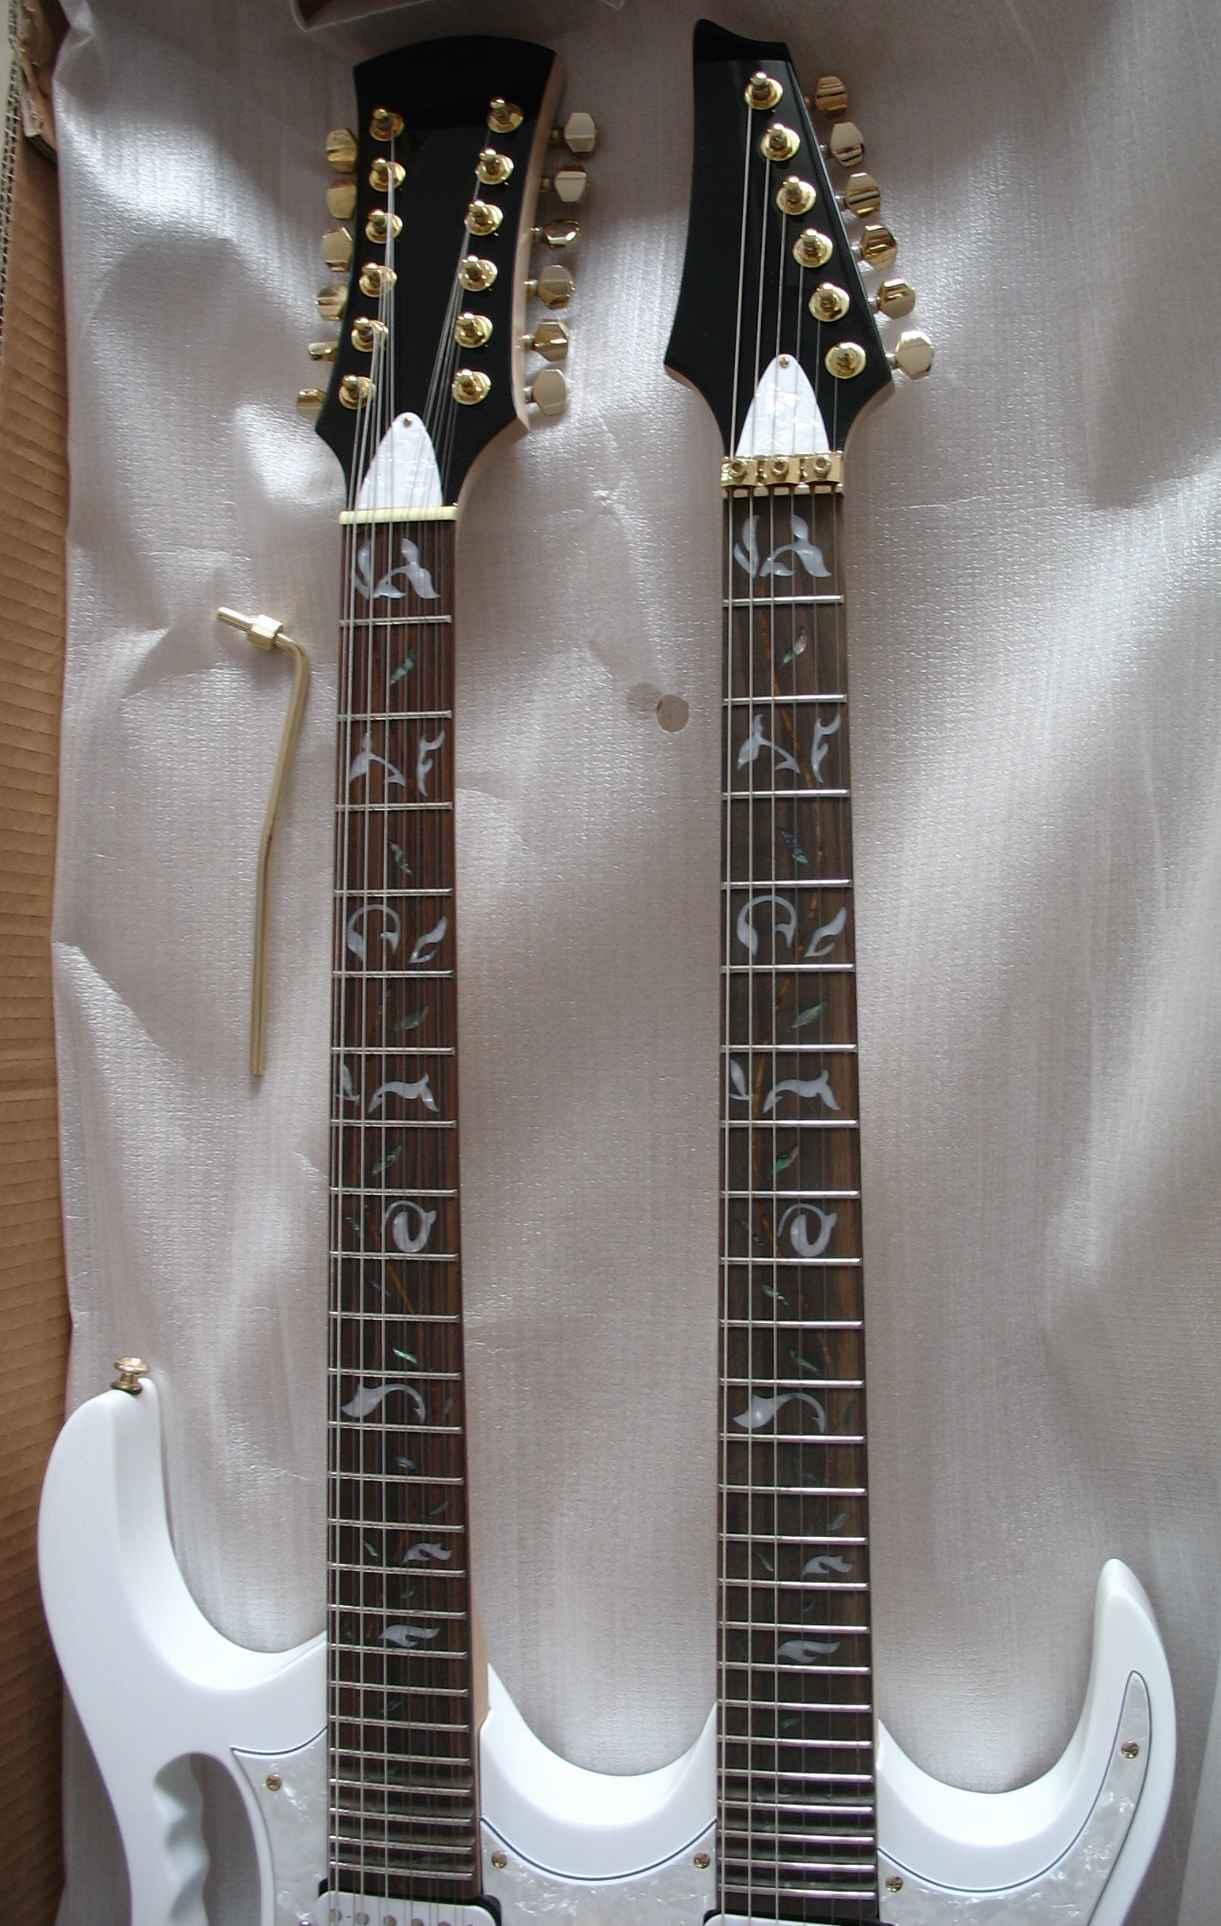 2020 Jingying Music Double Neck Style Electric Guitar and Bass Guitar 5